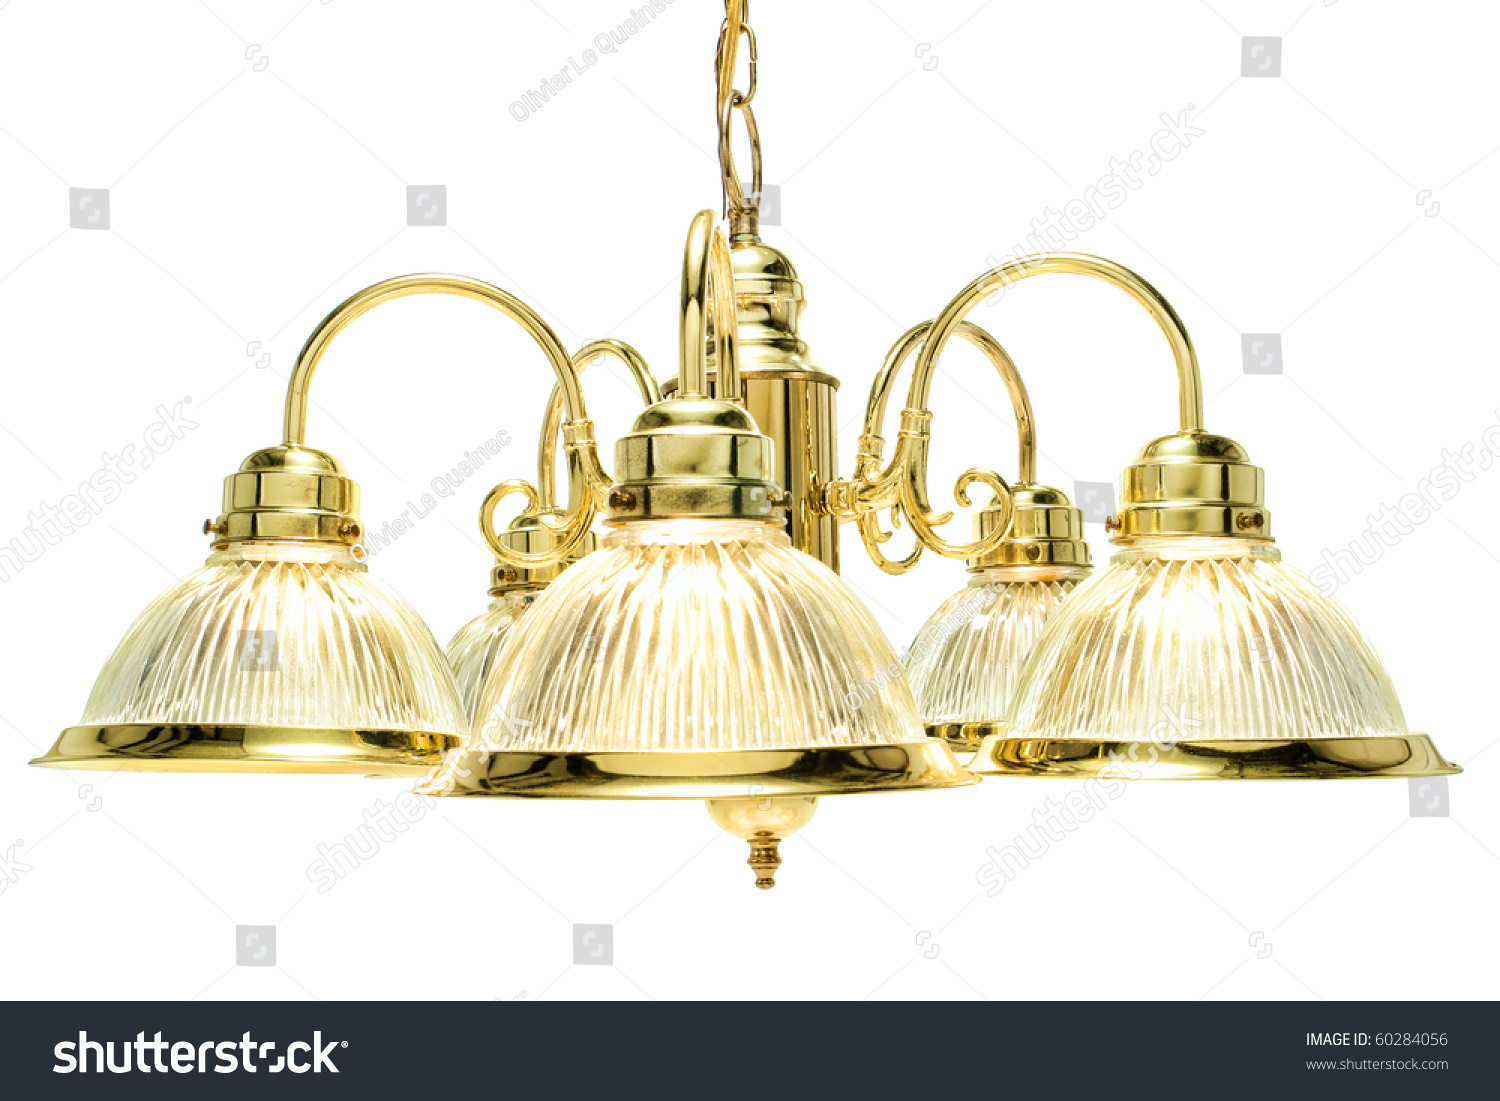 classic style home dining room bright brass with glass shades chandelier light fixture isolated. Black Bedroom Furniture Sets. Home Design Ideas